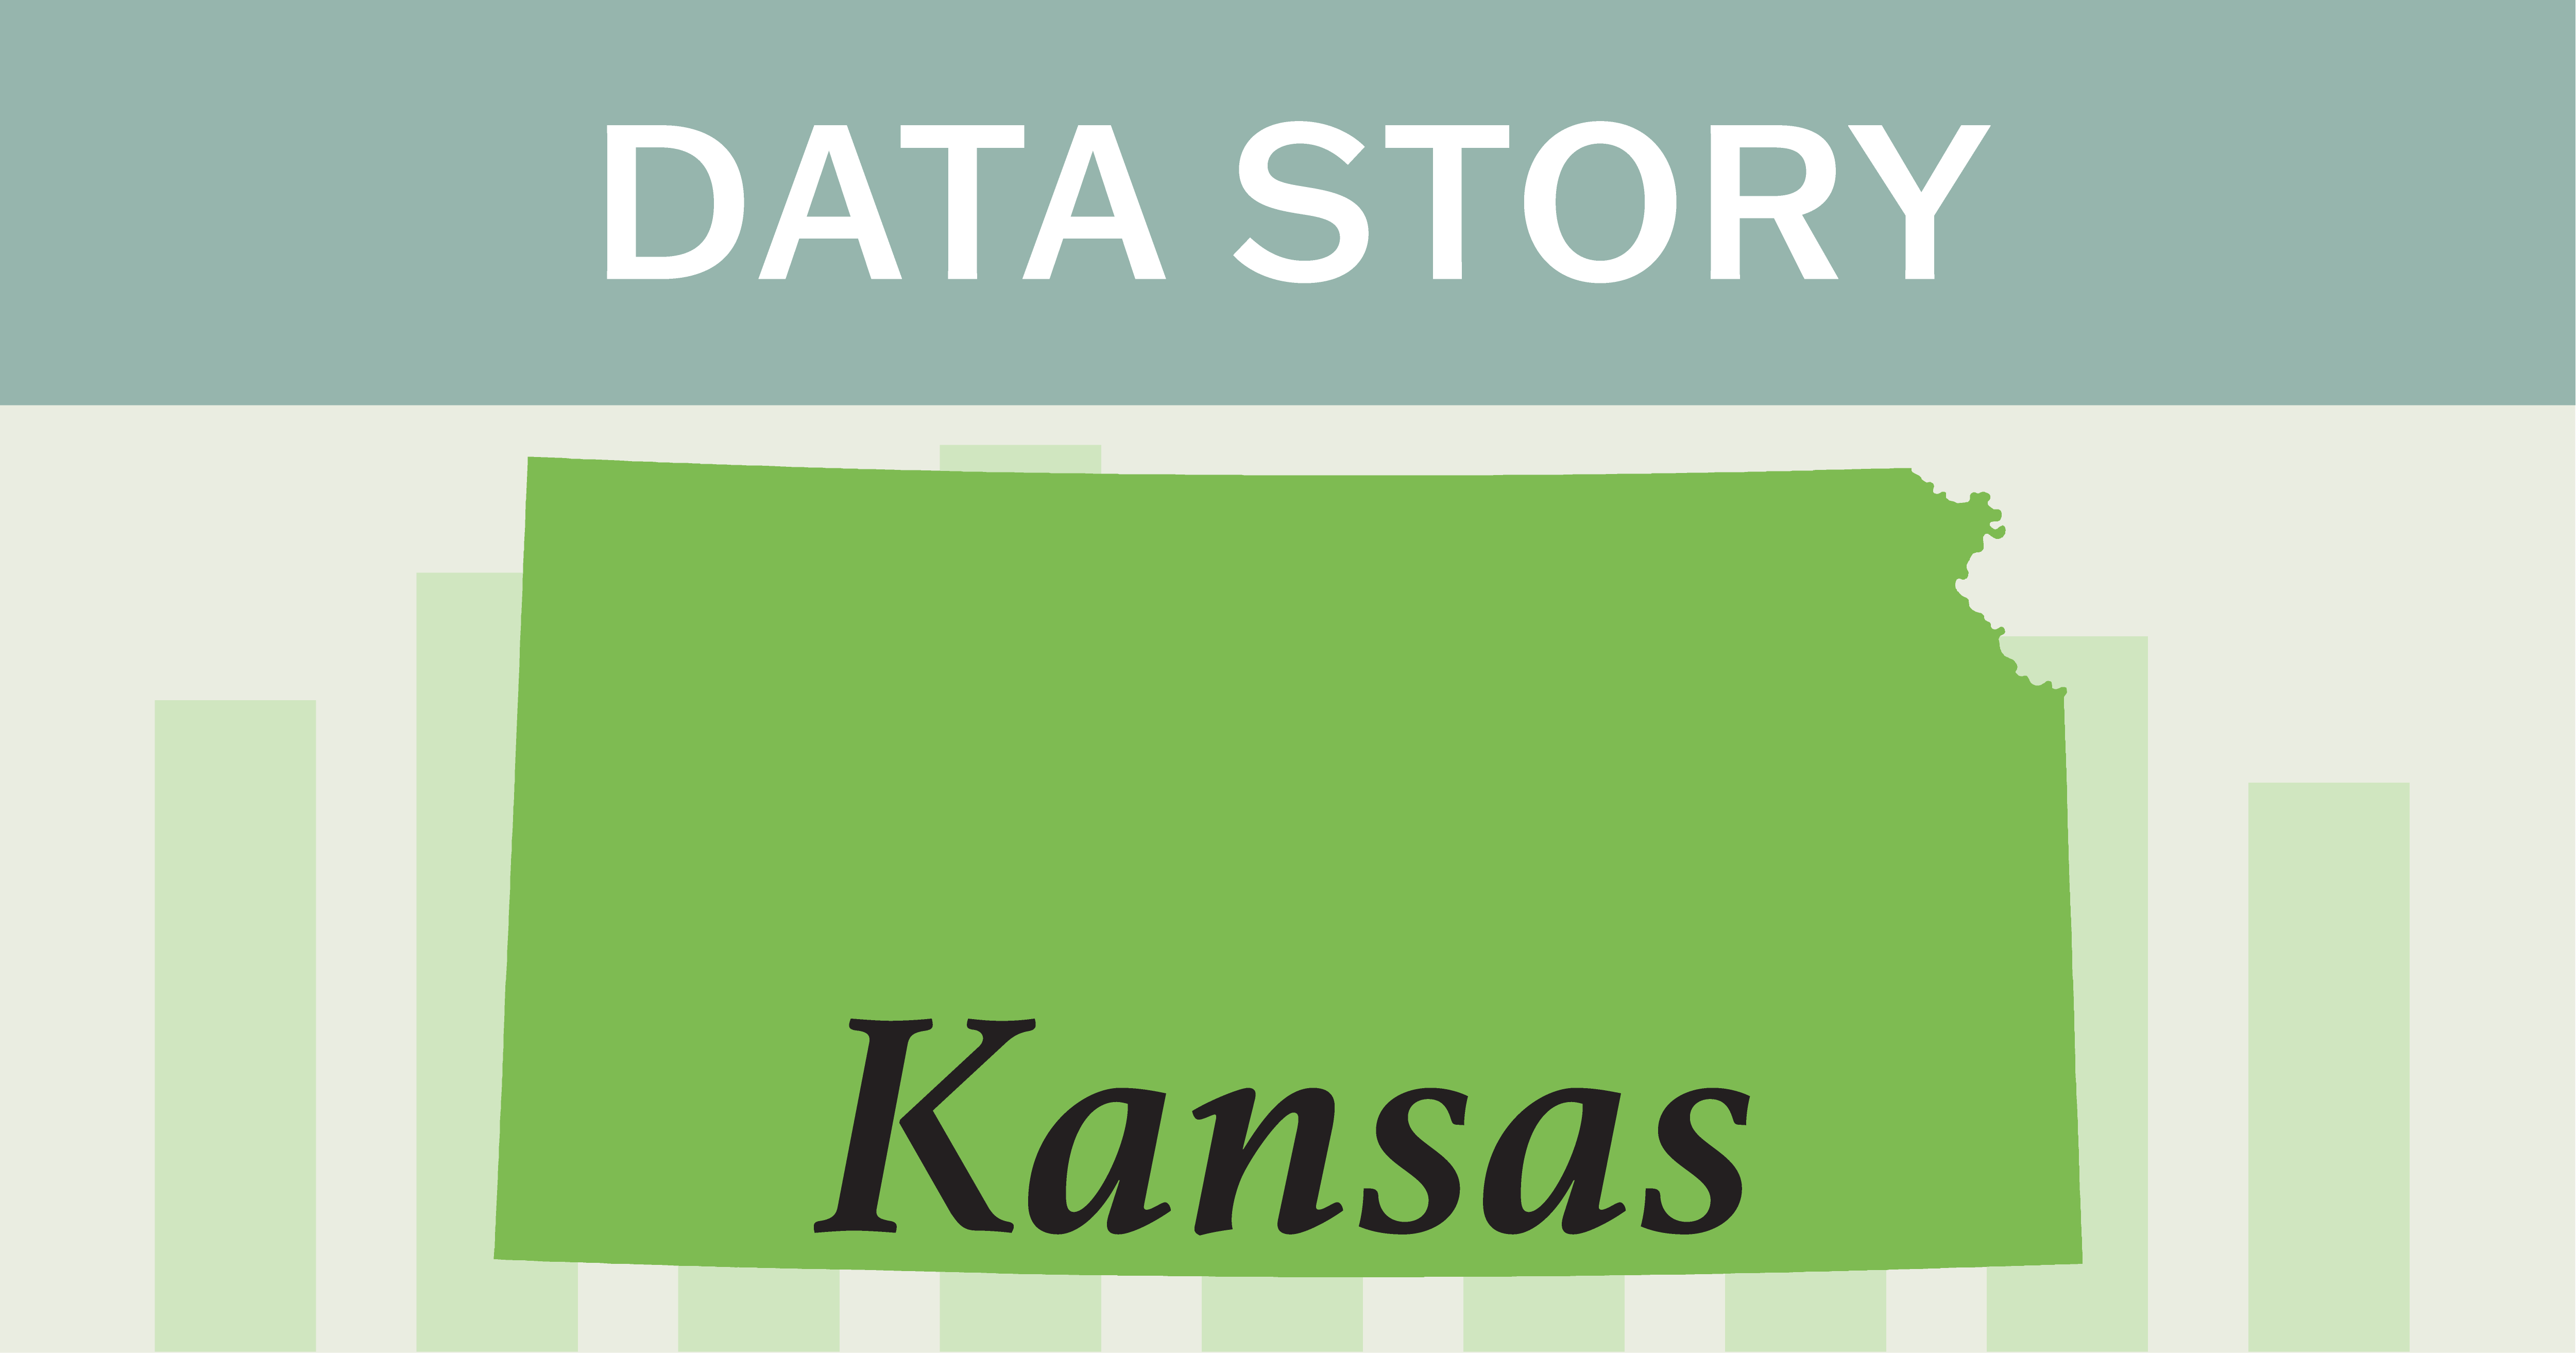 Outline of state of Kansas.